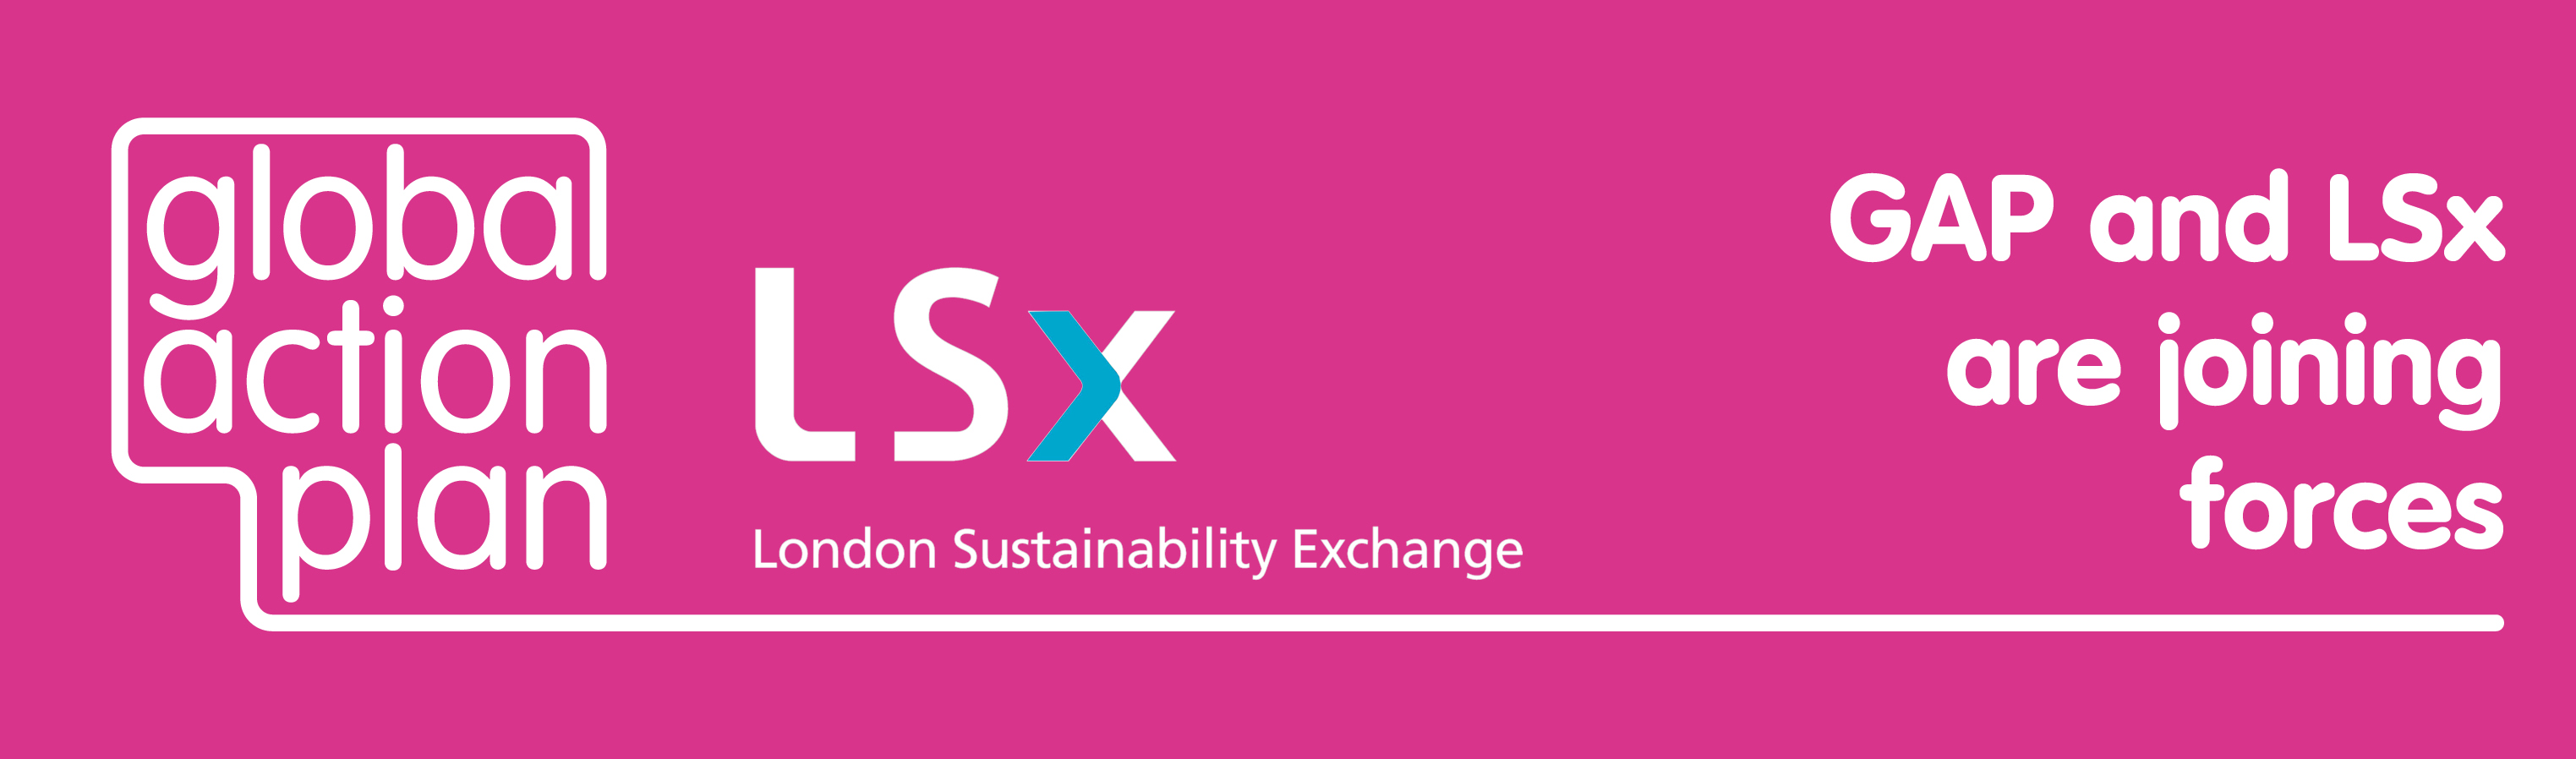 Gloal Action Plan and London Sustainability Exchange are joining forces